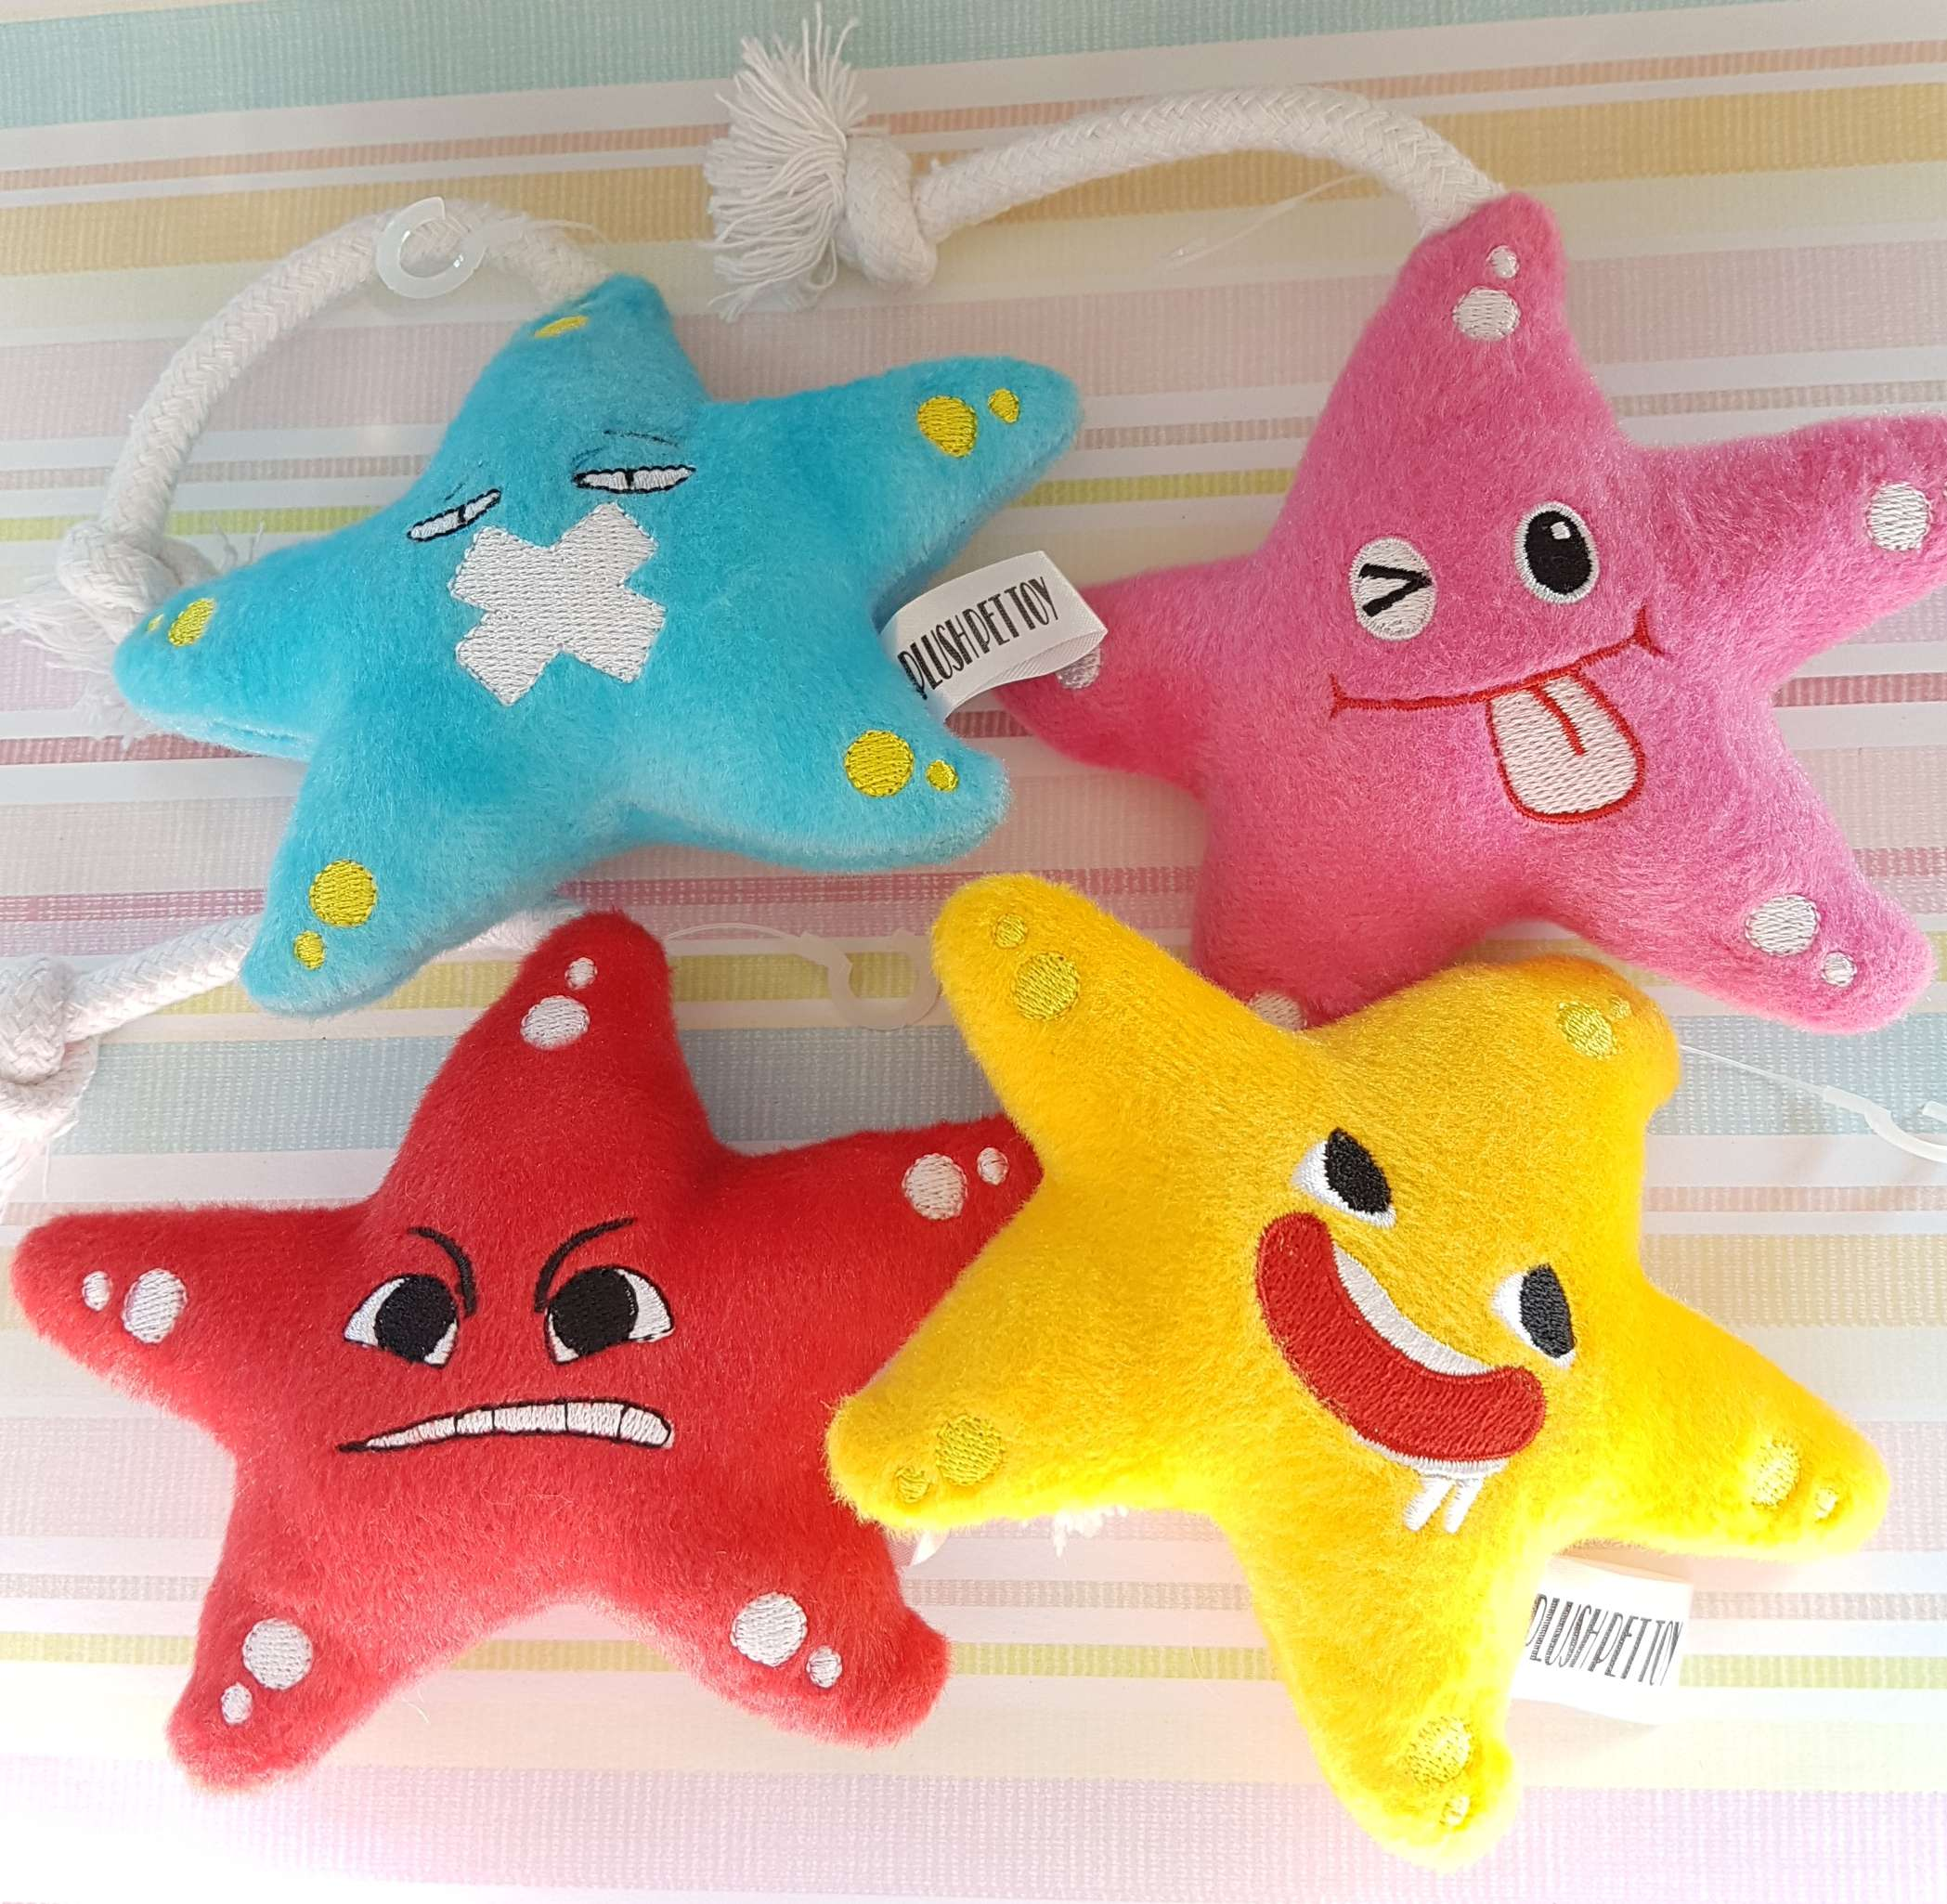 Star Fish Plush Pet Toy with Loud Squeaky Sound Photo